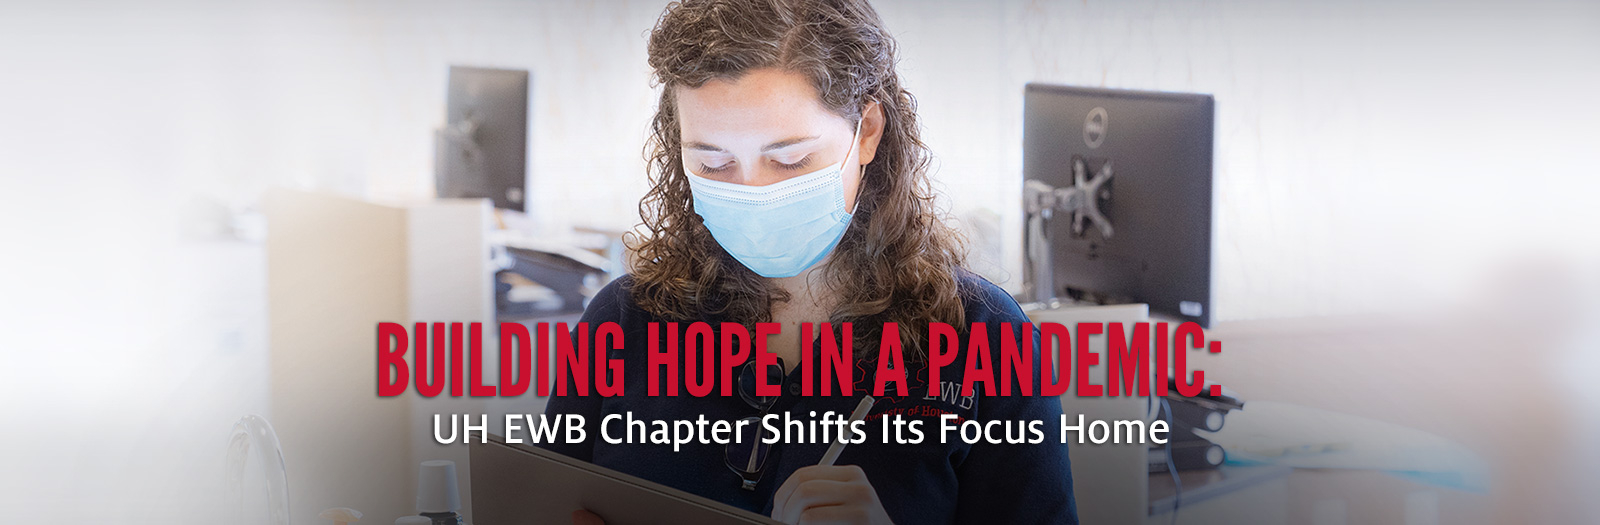 Building Hope in a Pandemic